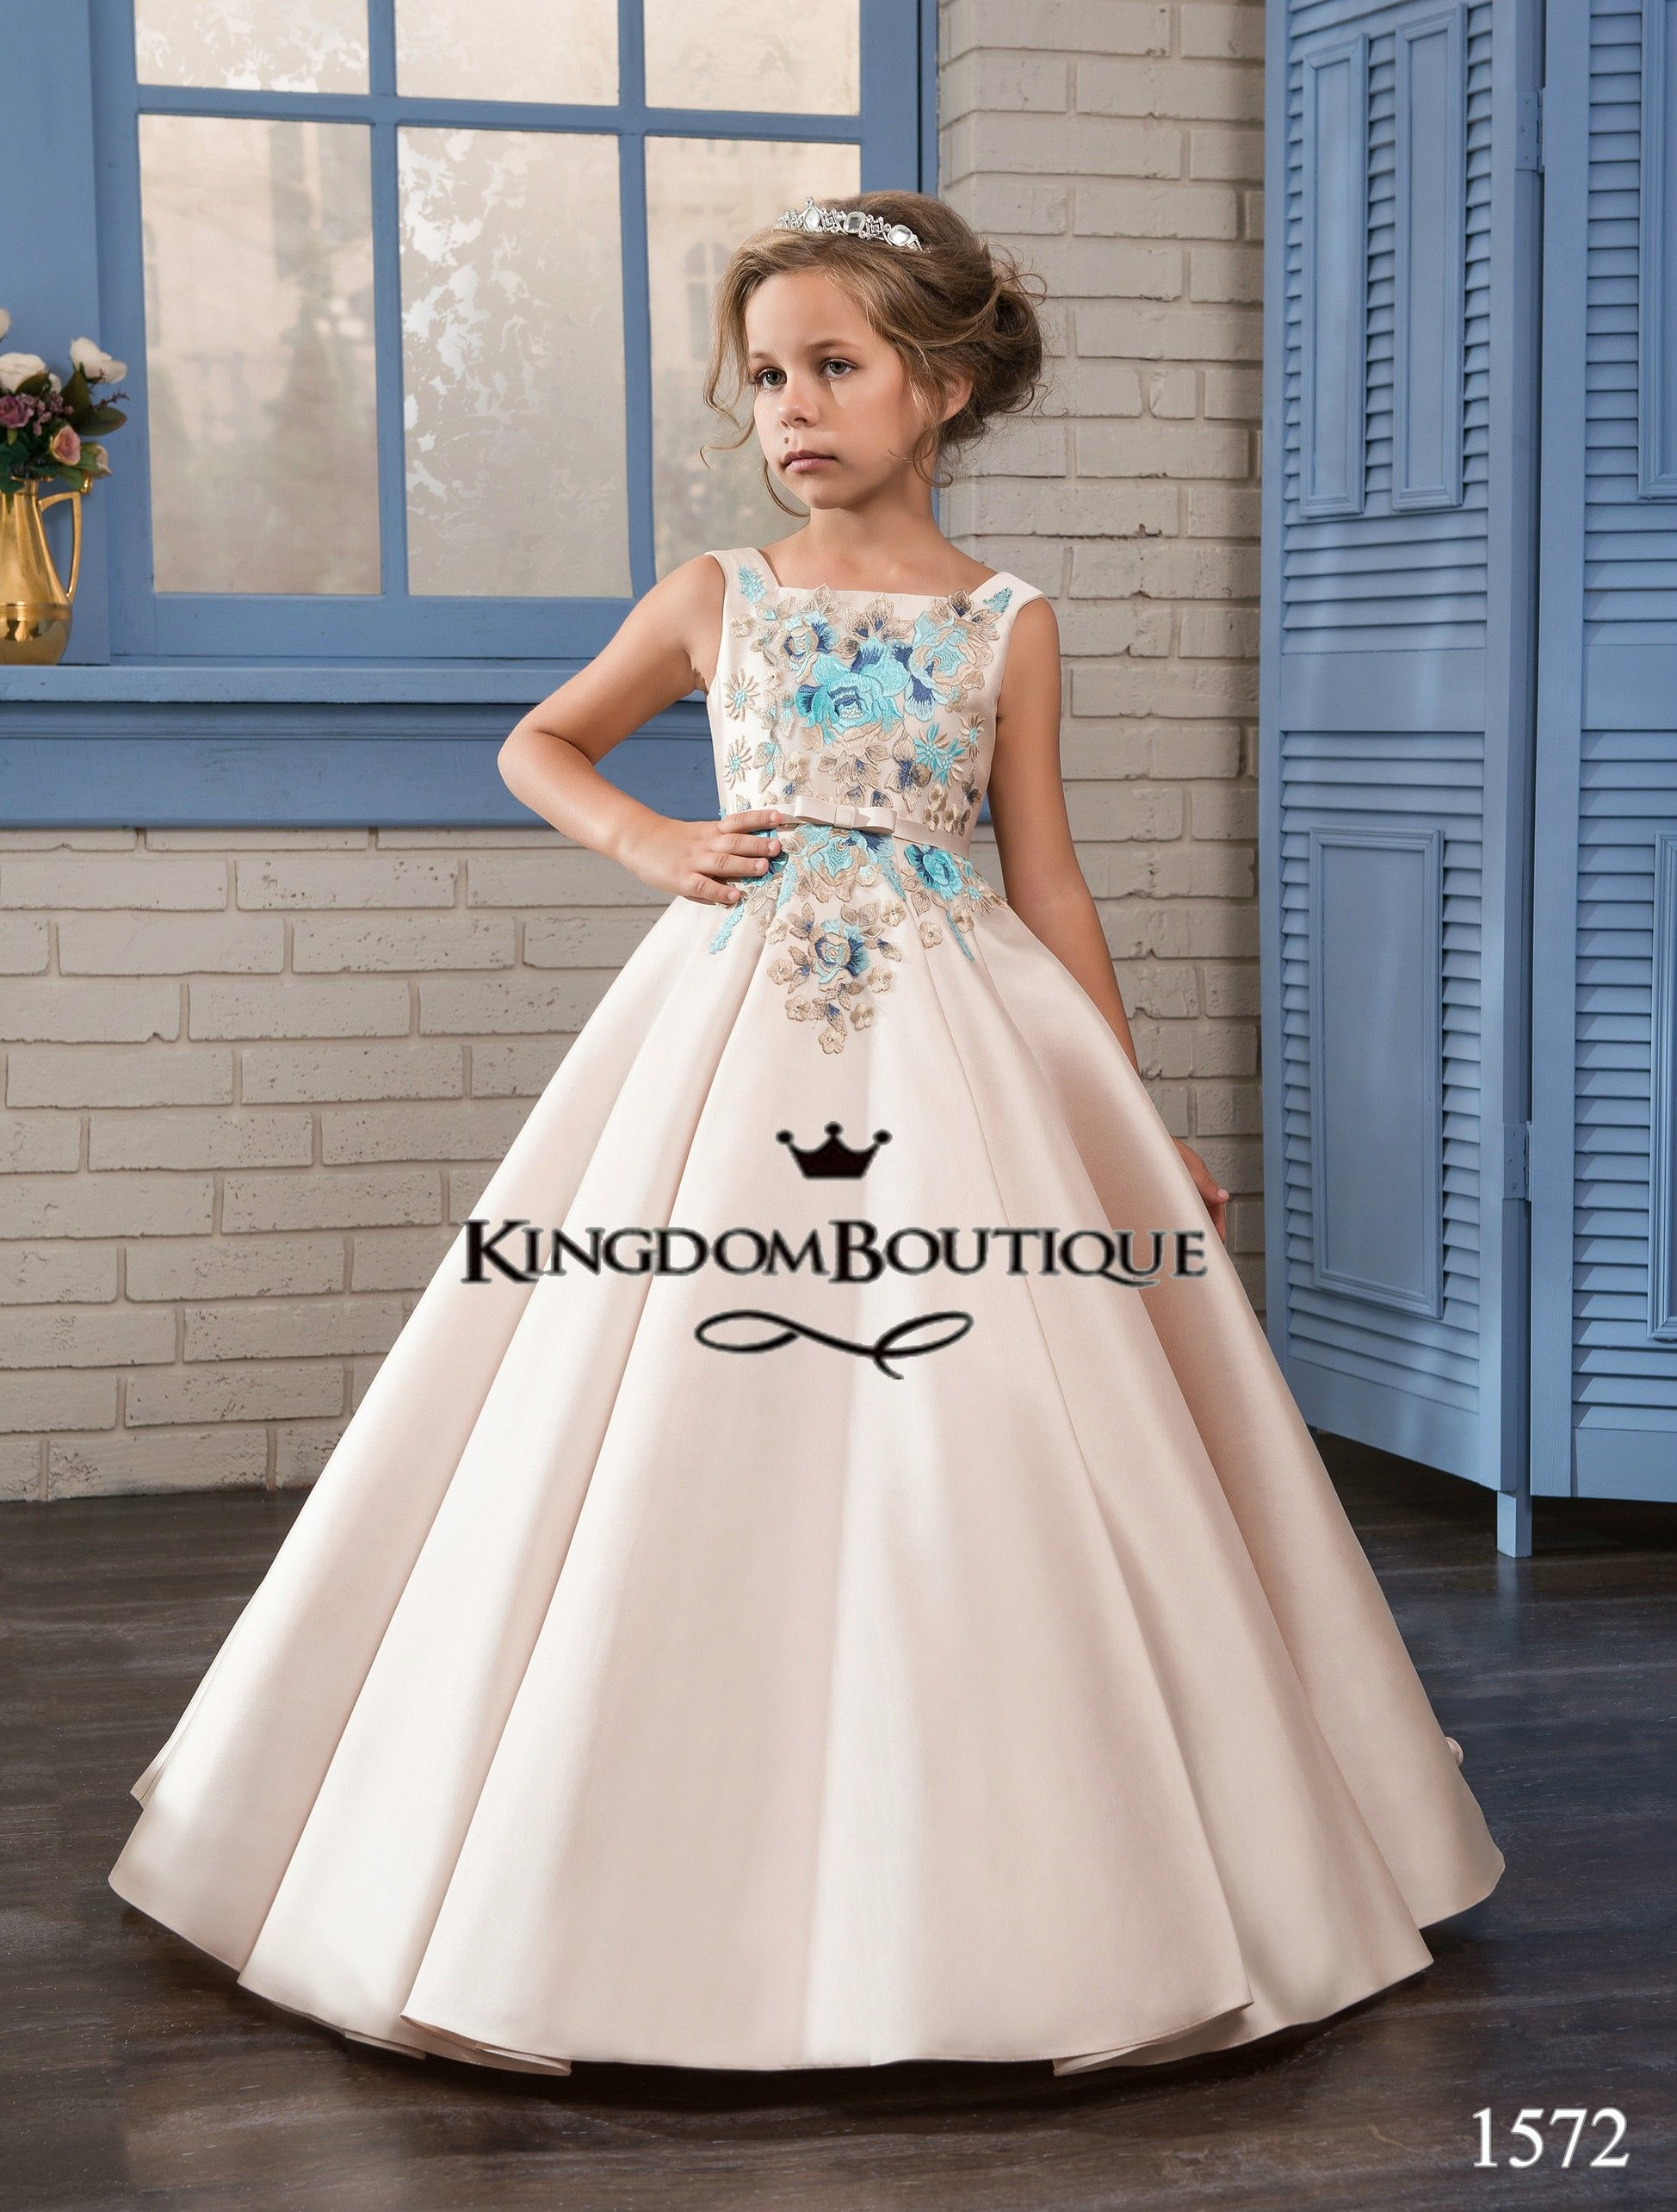 c5991cf499b Sleeping Beauty   Dress 16-1572 - kingdom.boutique Children s Wedding  Dresses Flower Girl Dresses Pageant dress